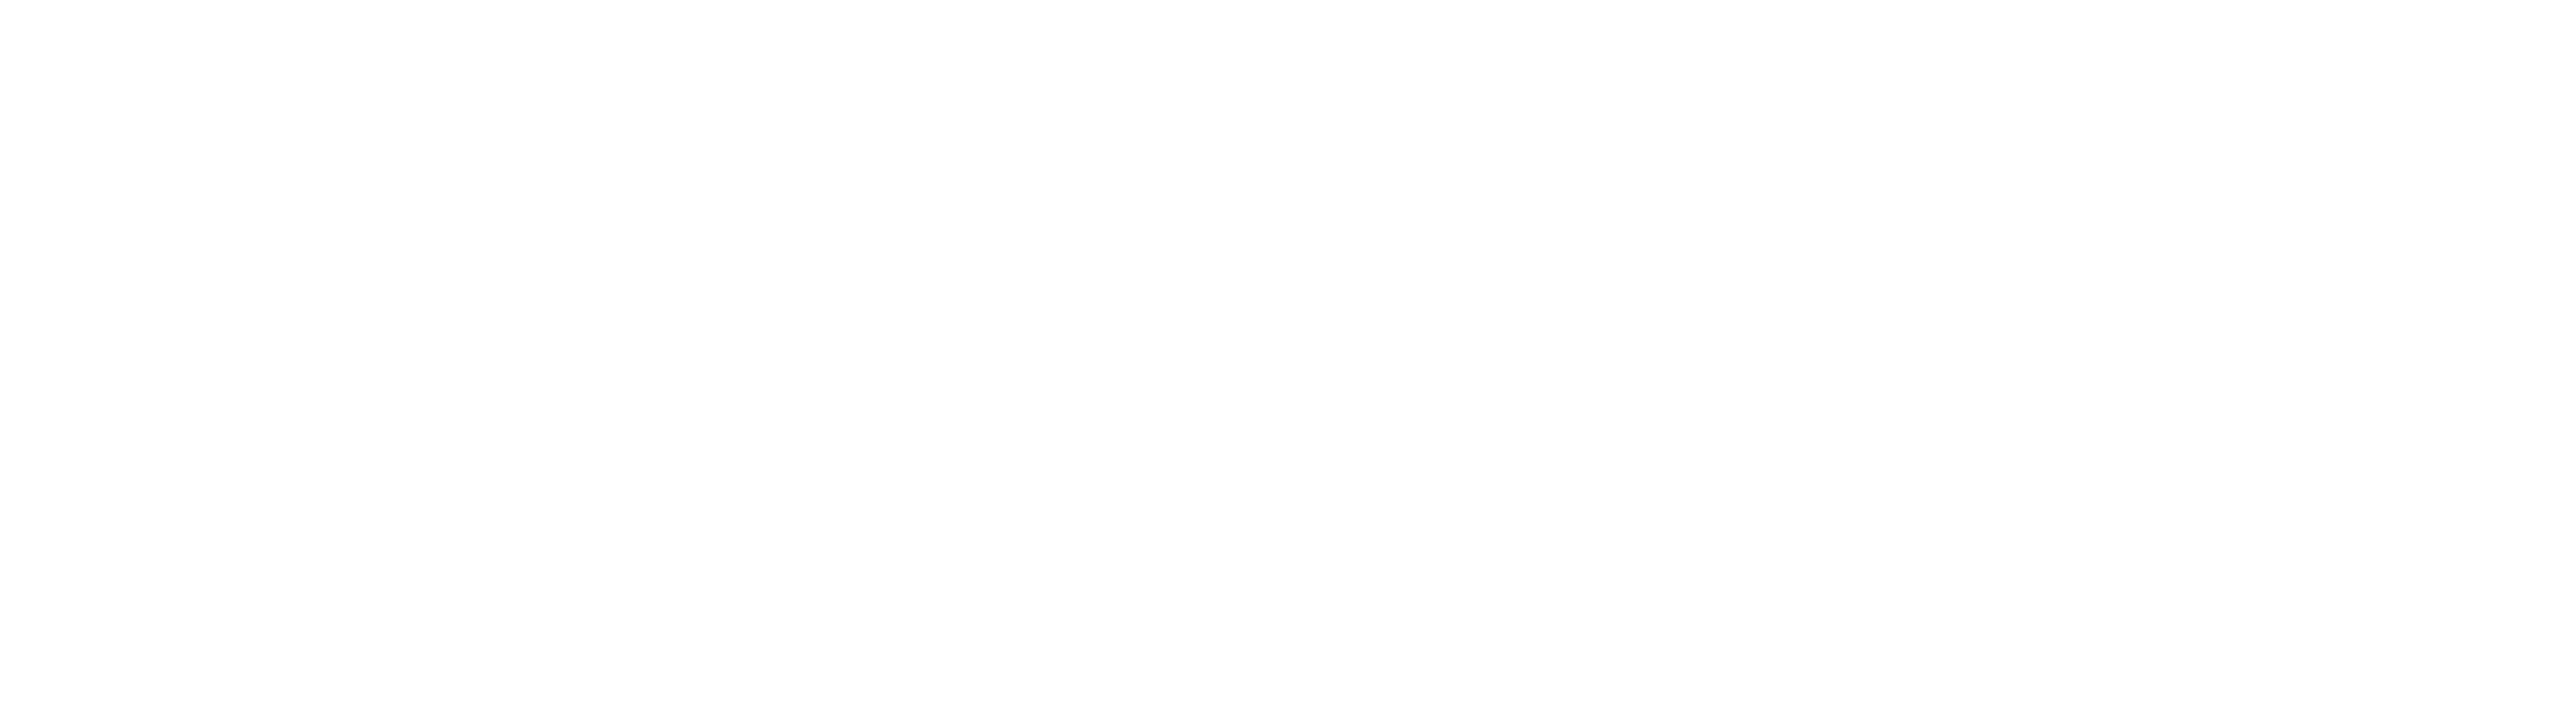 Occasions Florist - Flower Delivery in Murphy, NC